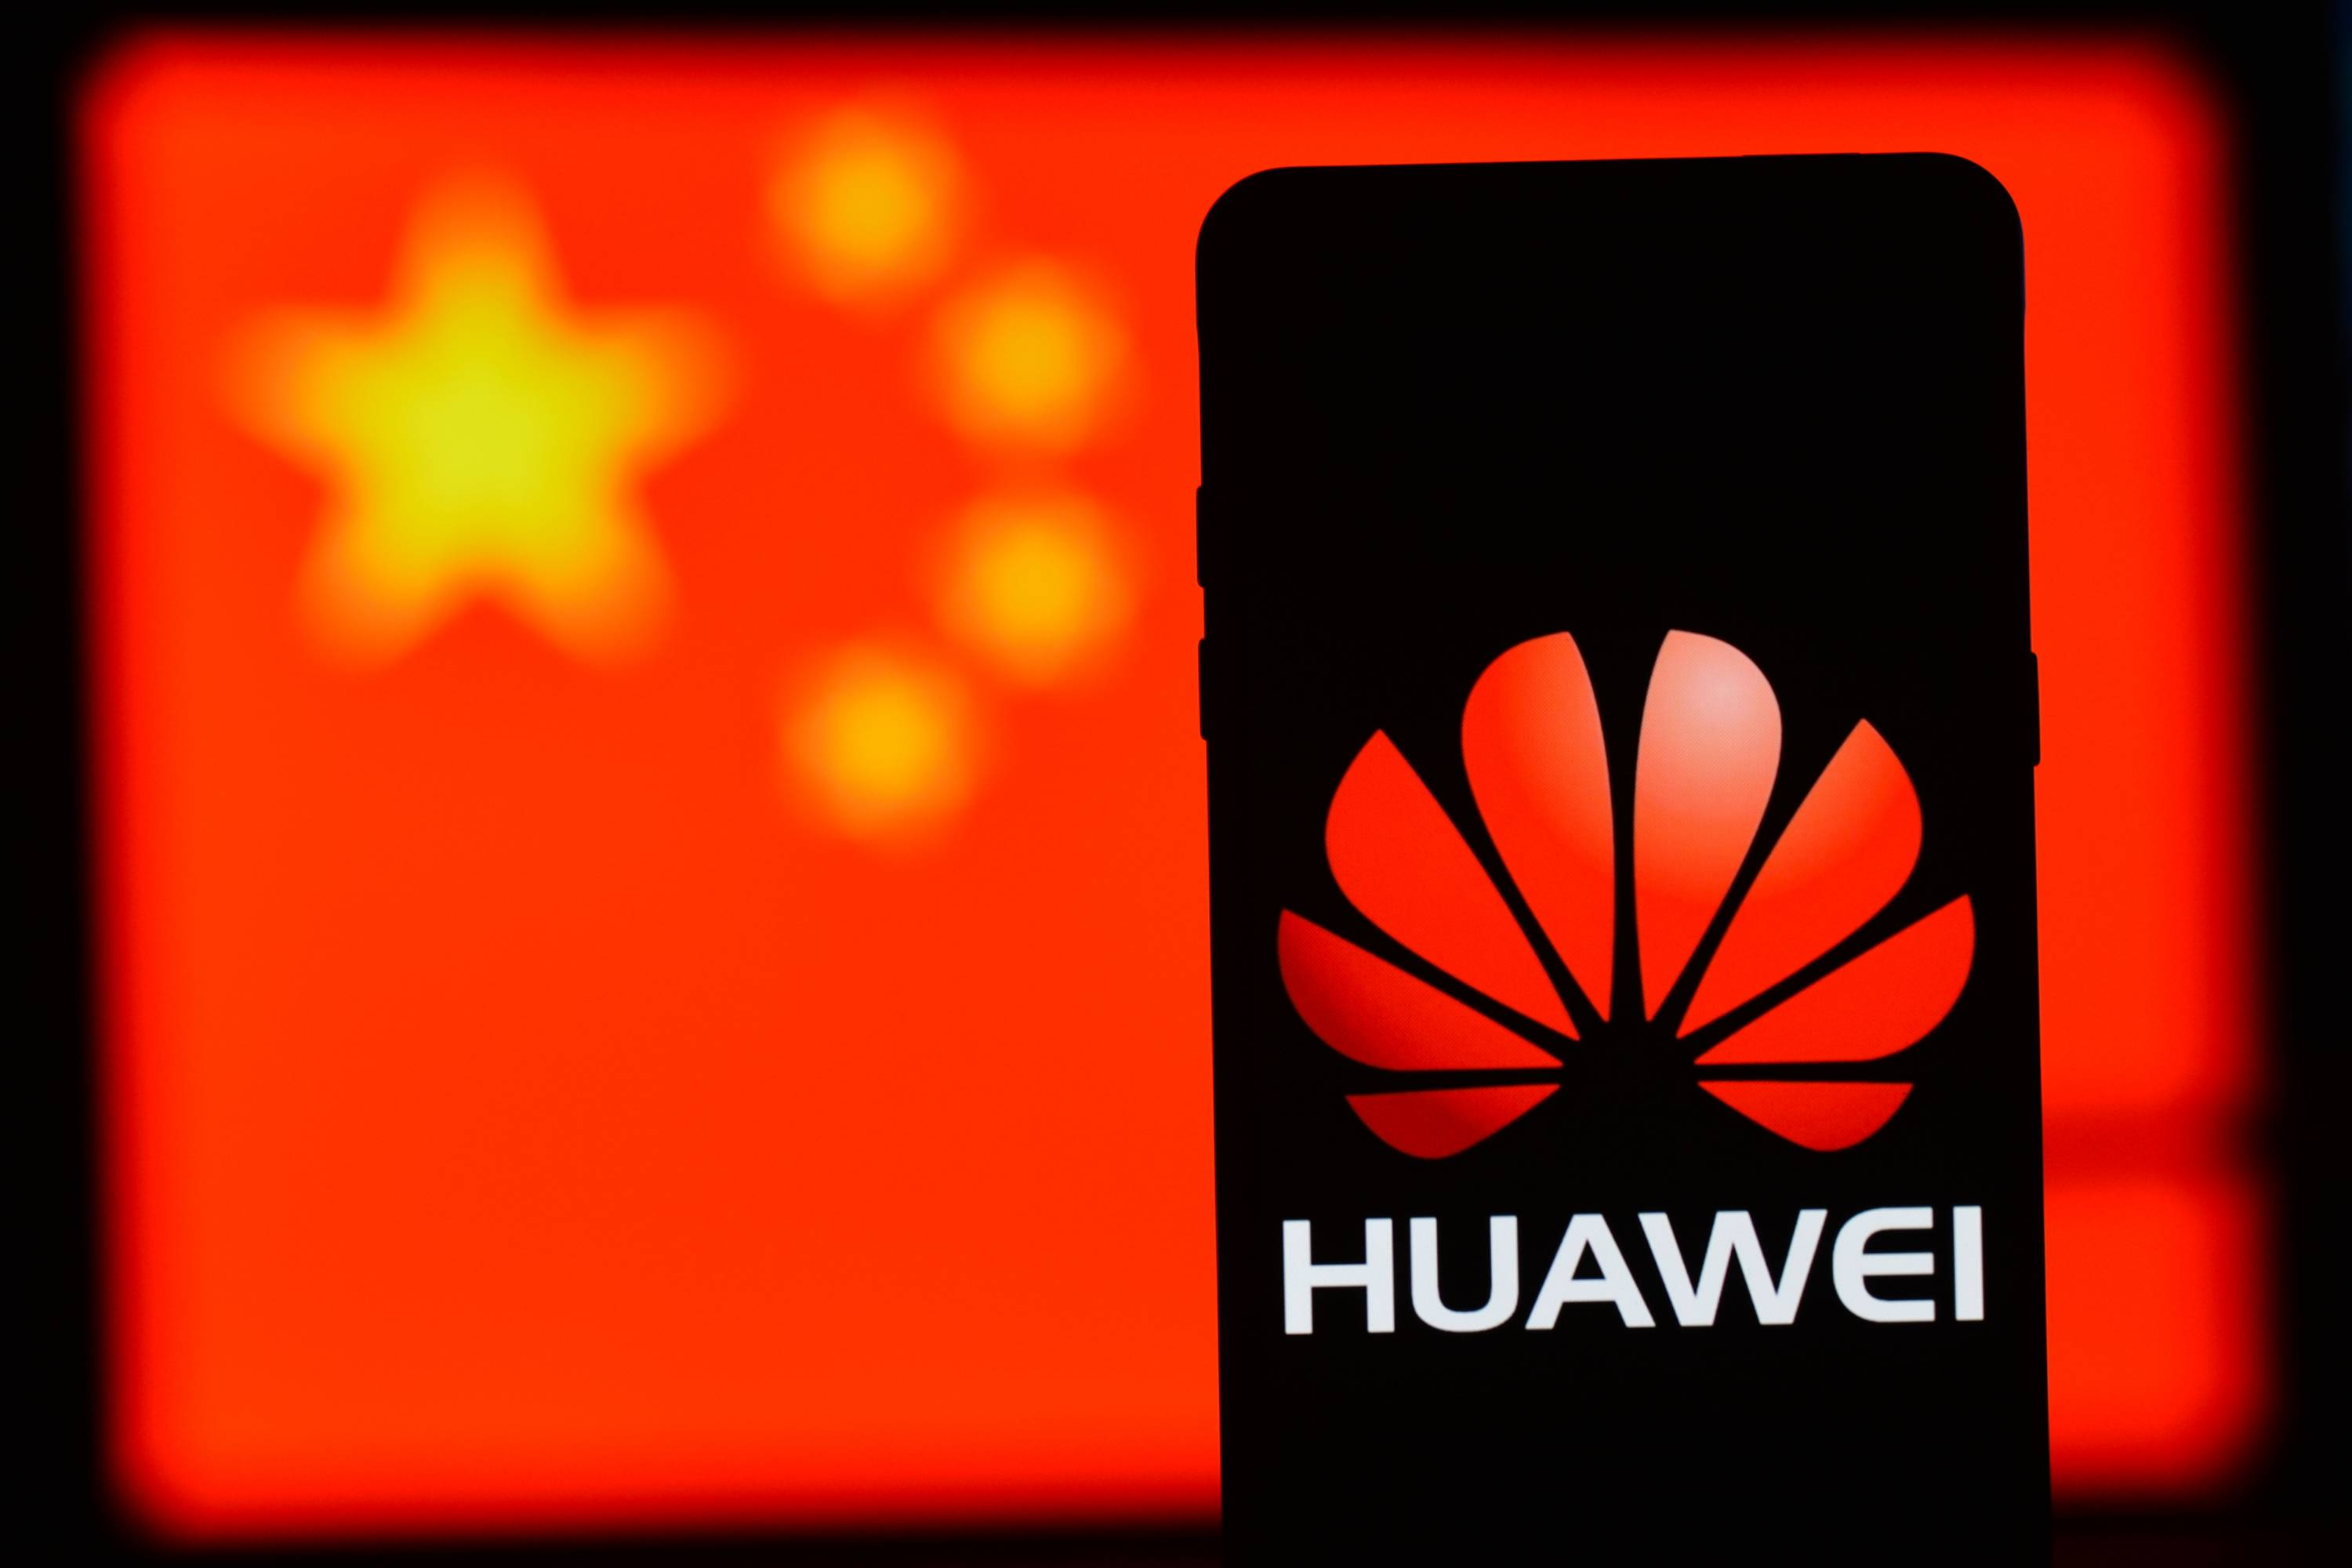 A Huawei logo seen displayed on a smart phone